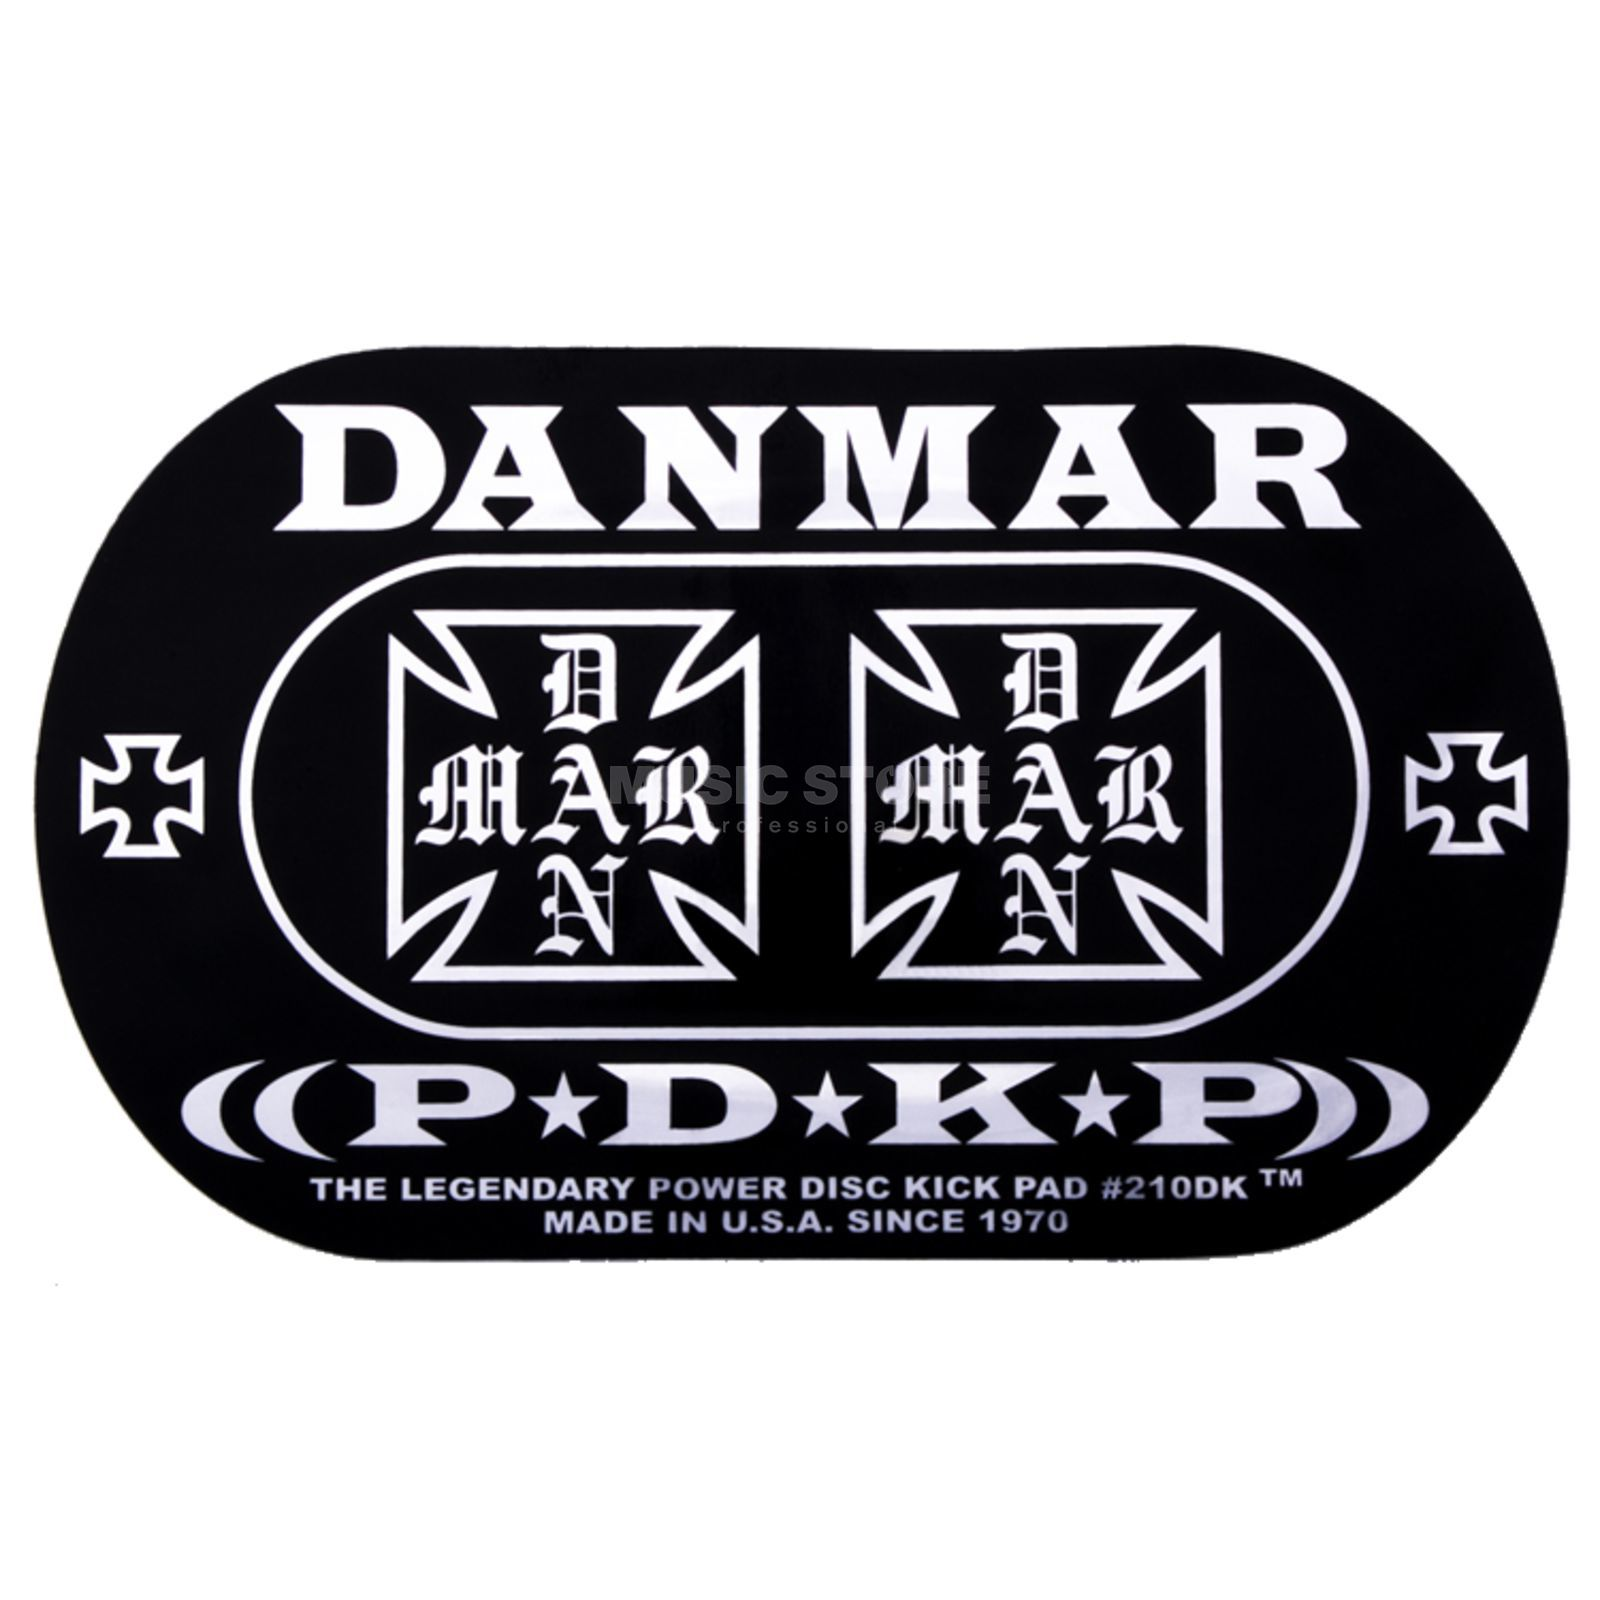 Danmar Drum Zubehör basDrum Kickpad 210DKIC, Double pedaal, Iron Cross Productafbeelding